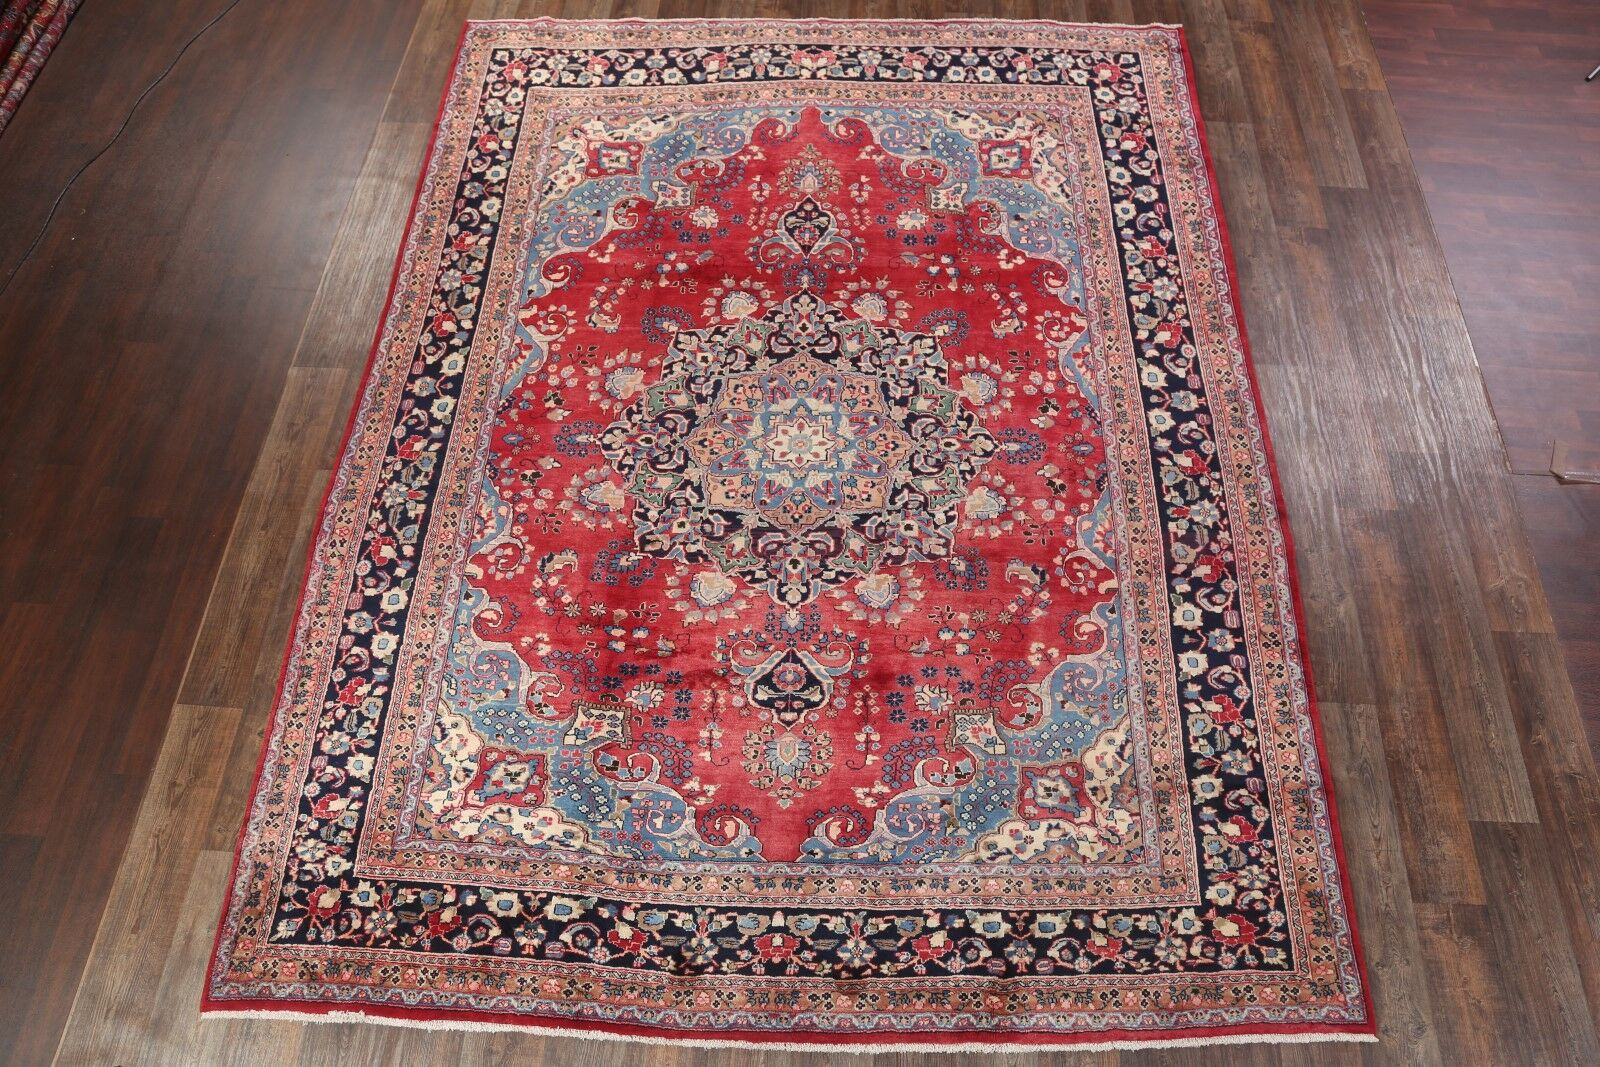 One-of-a-Kind Mashad Persian Vintage Traditional Hand-Knotted 9'8